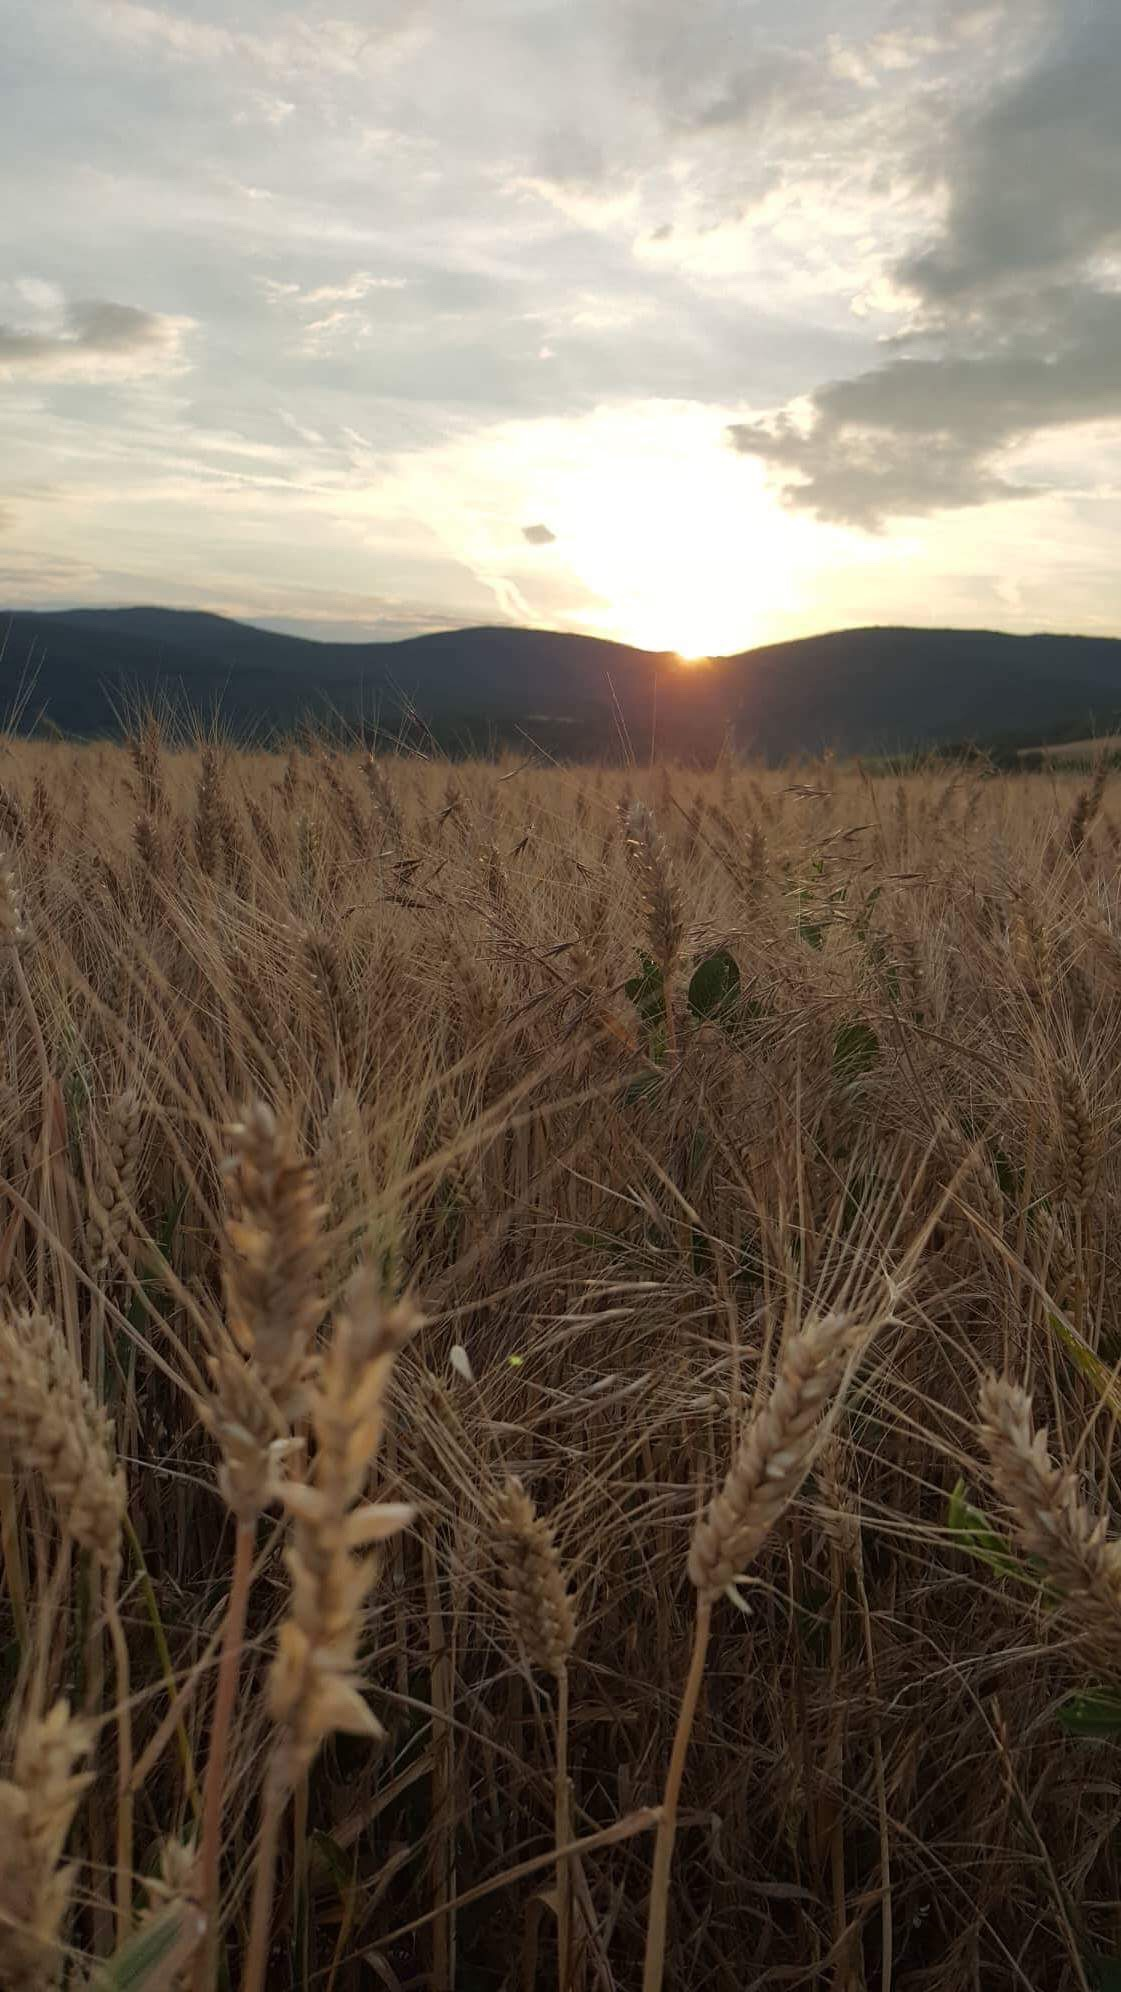 Corn field over Bükkzsérc